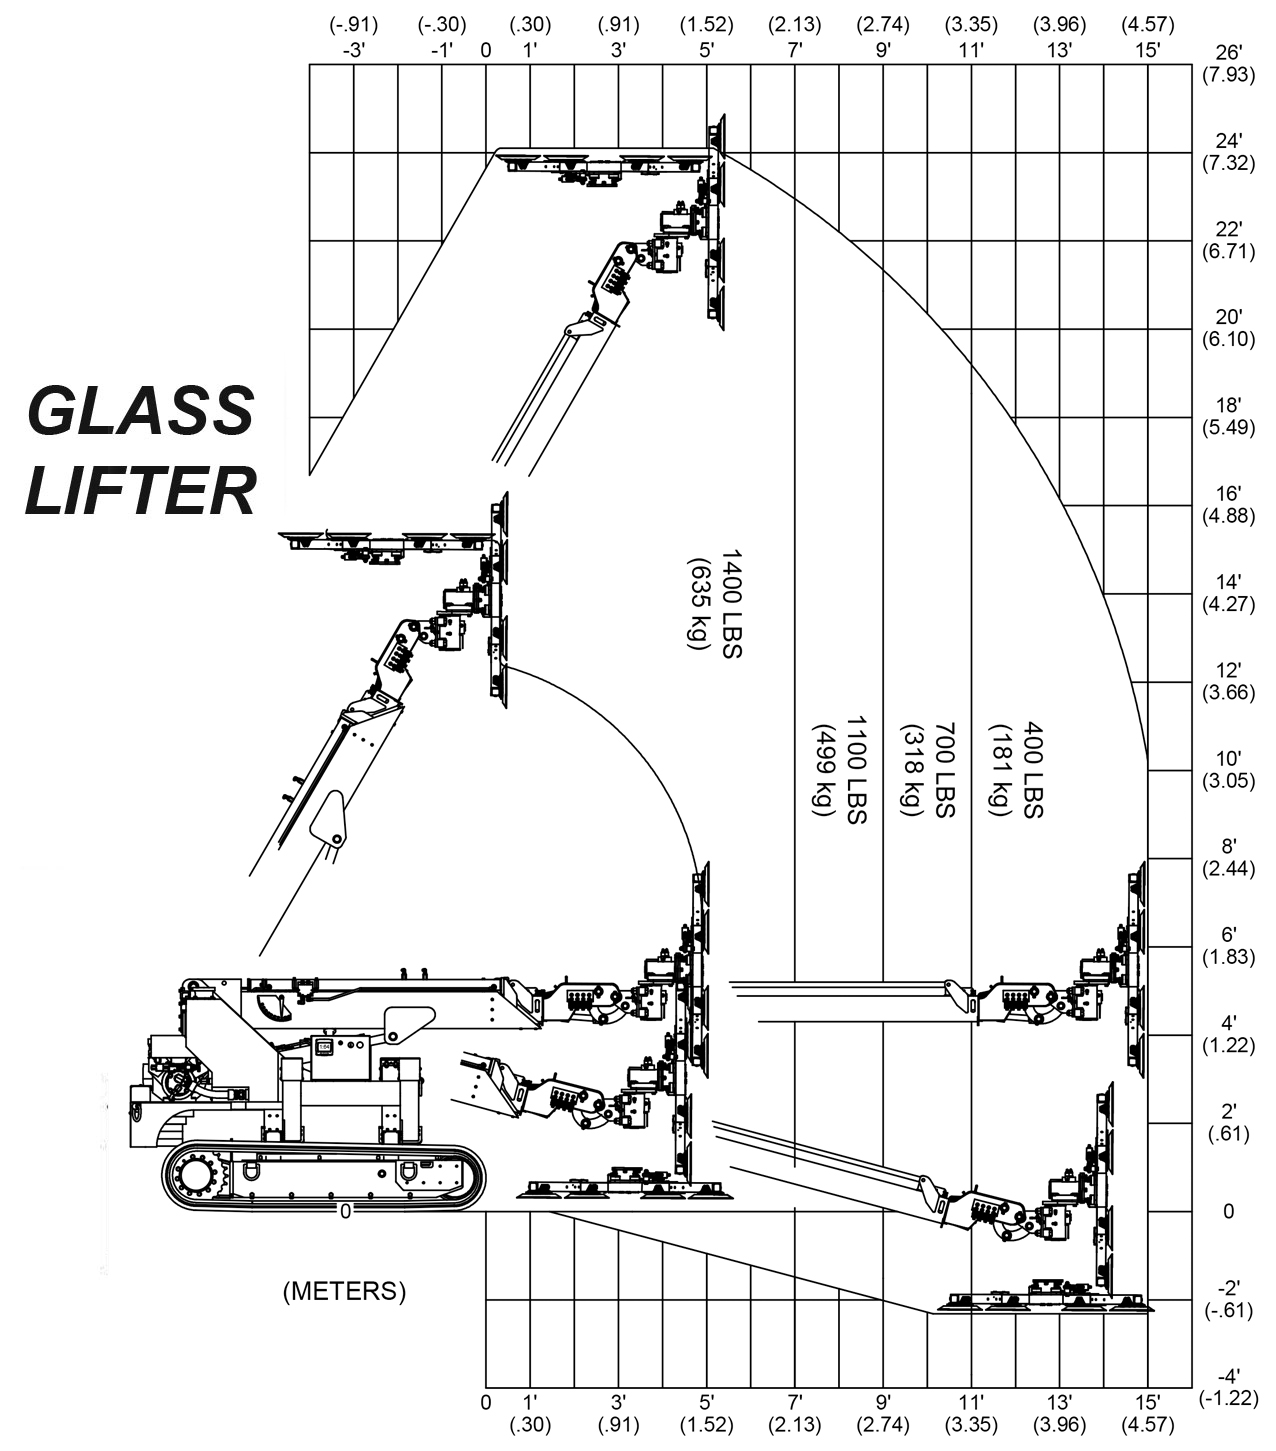 Brandon Trax Glass Lifter Load Capacity